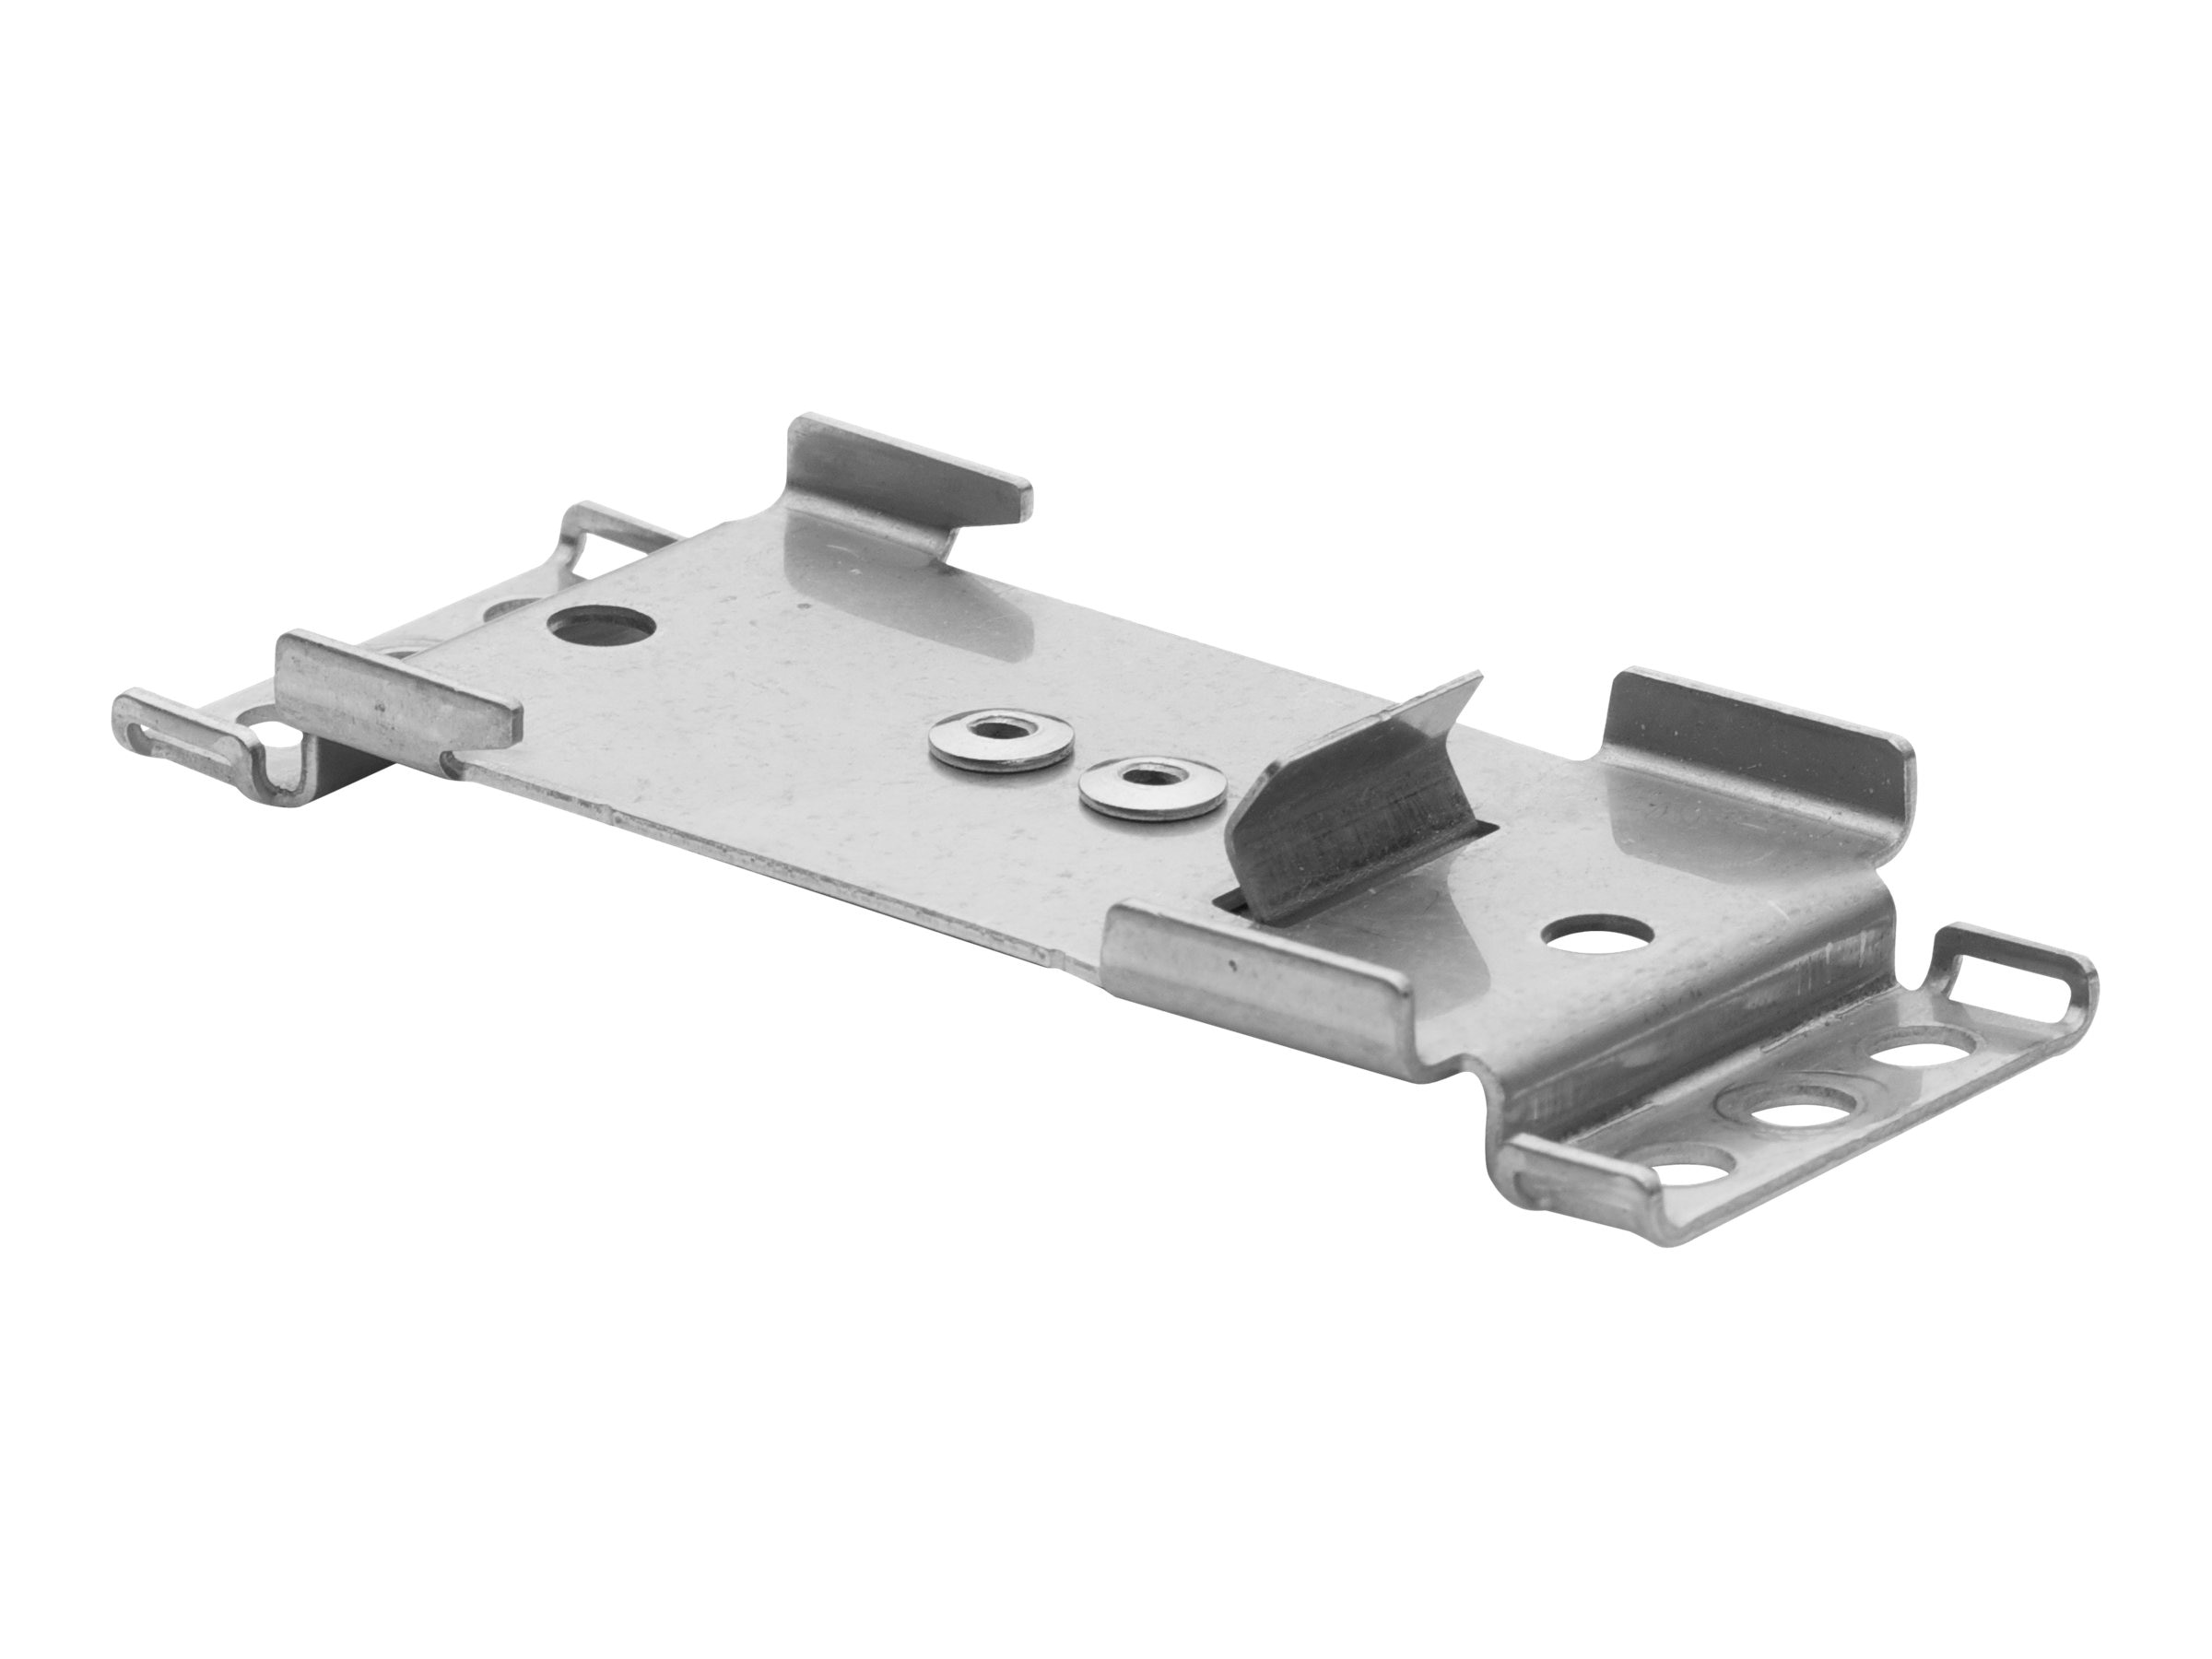 Axis T91A03 DIN Rail Clip, 5503-194, 15017606, Mounting Hardware - Network